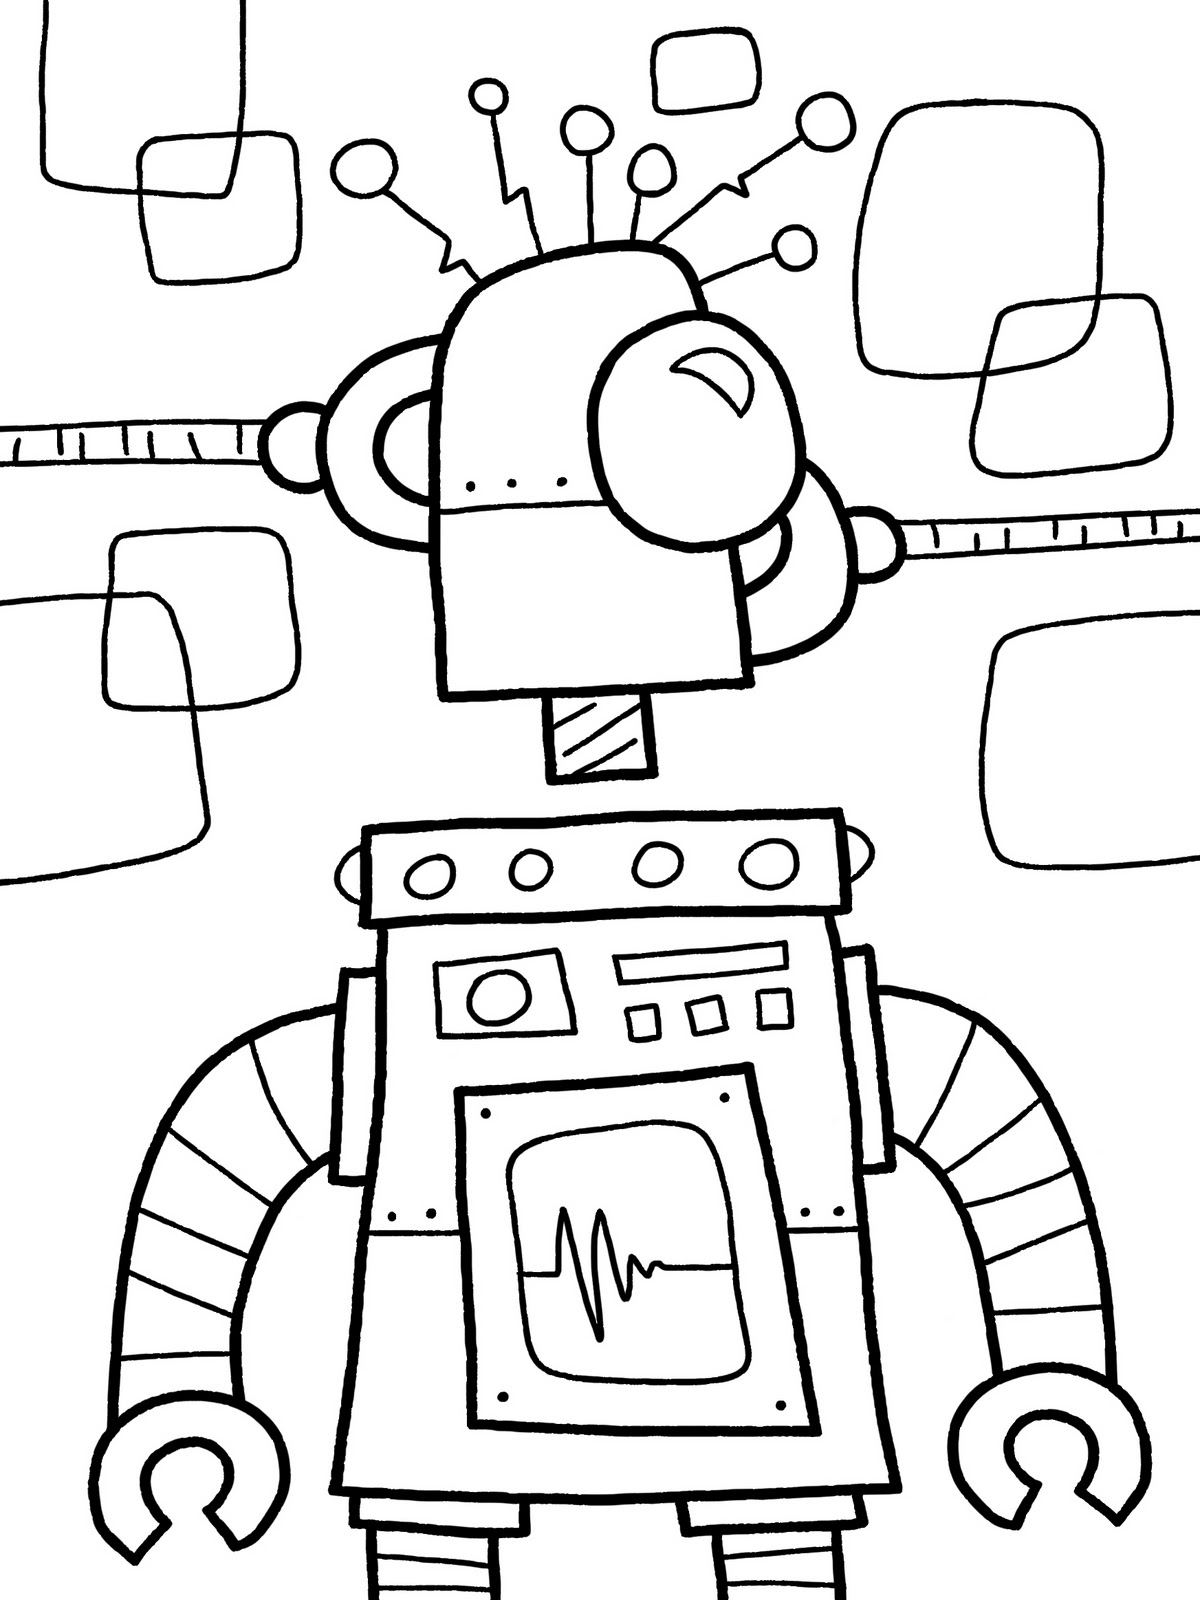 free robot coloring pages image robot pour coloriage free to print free robot pages coloring